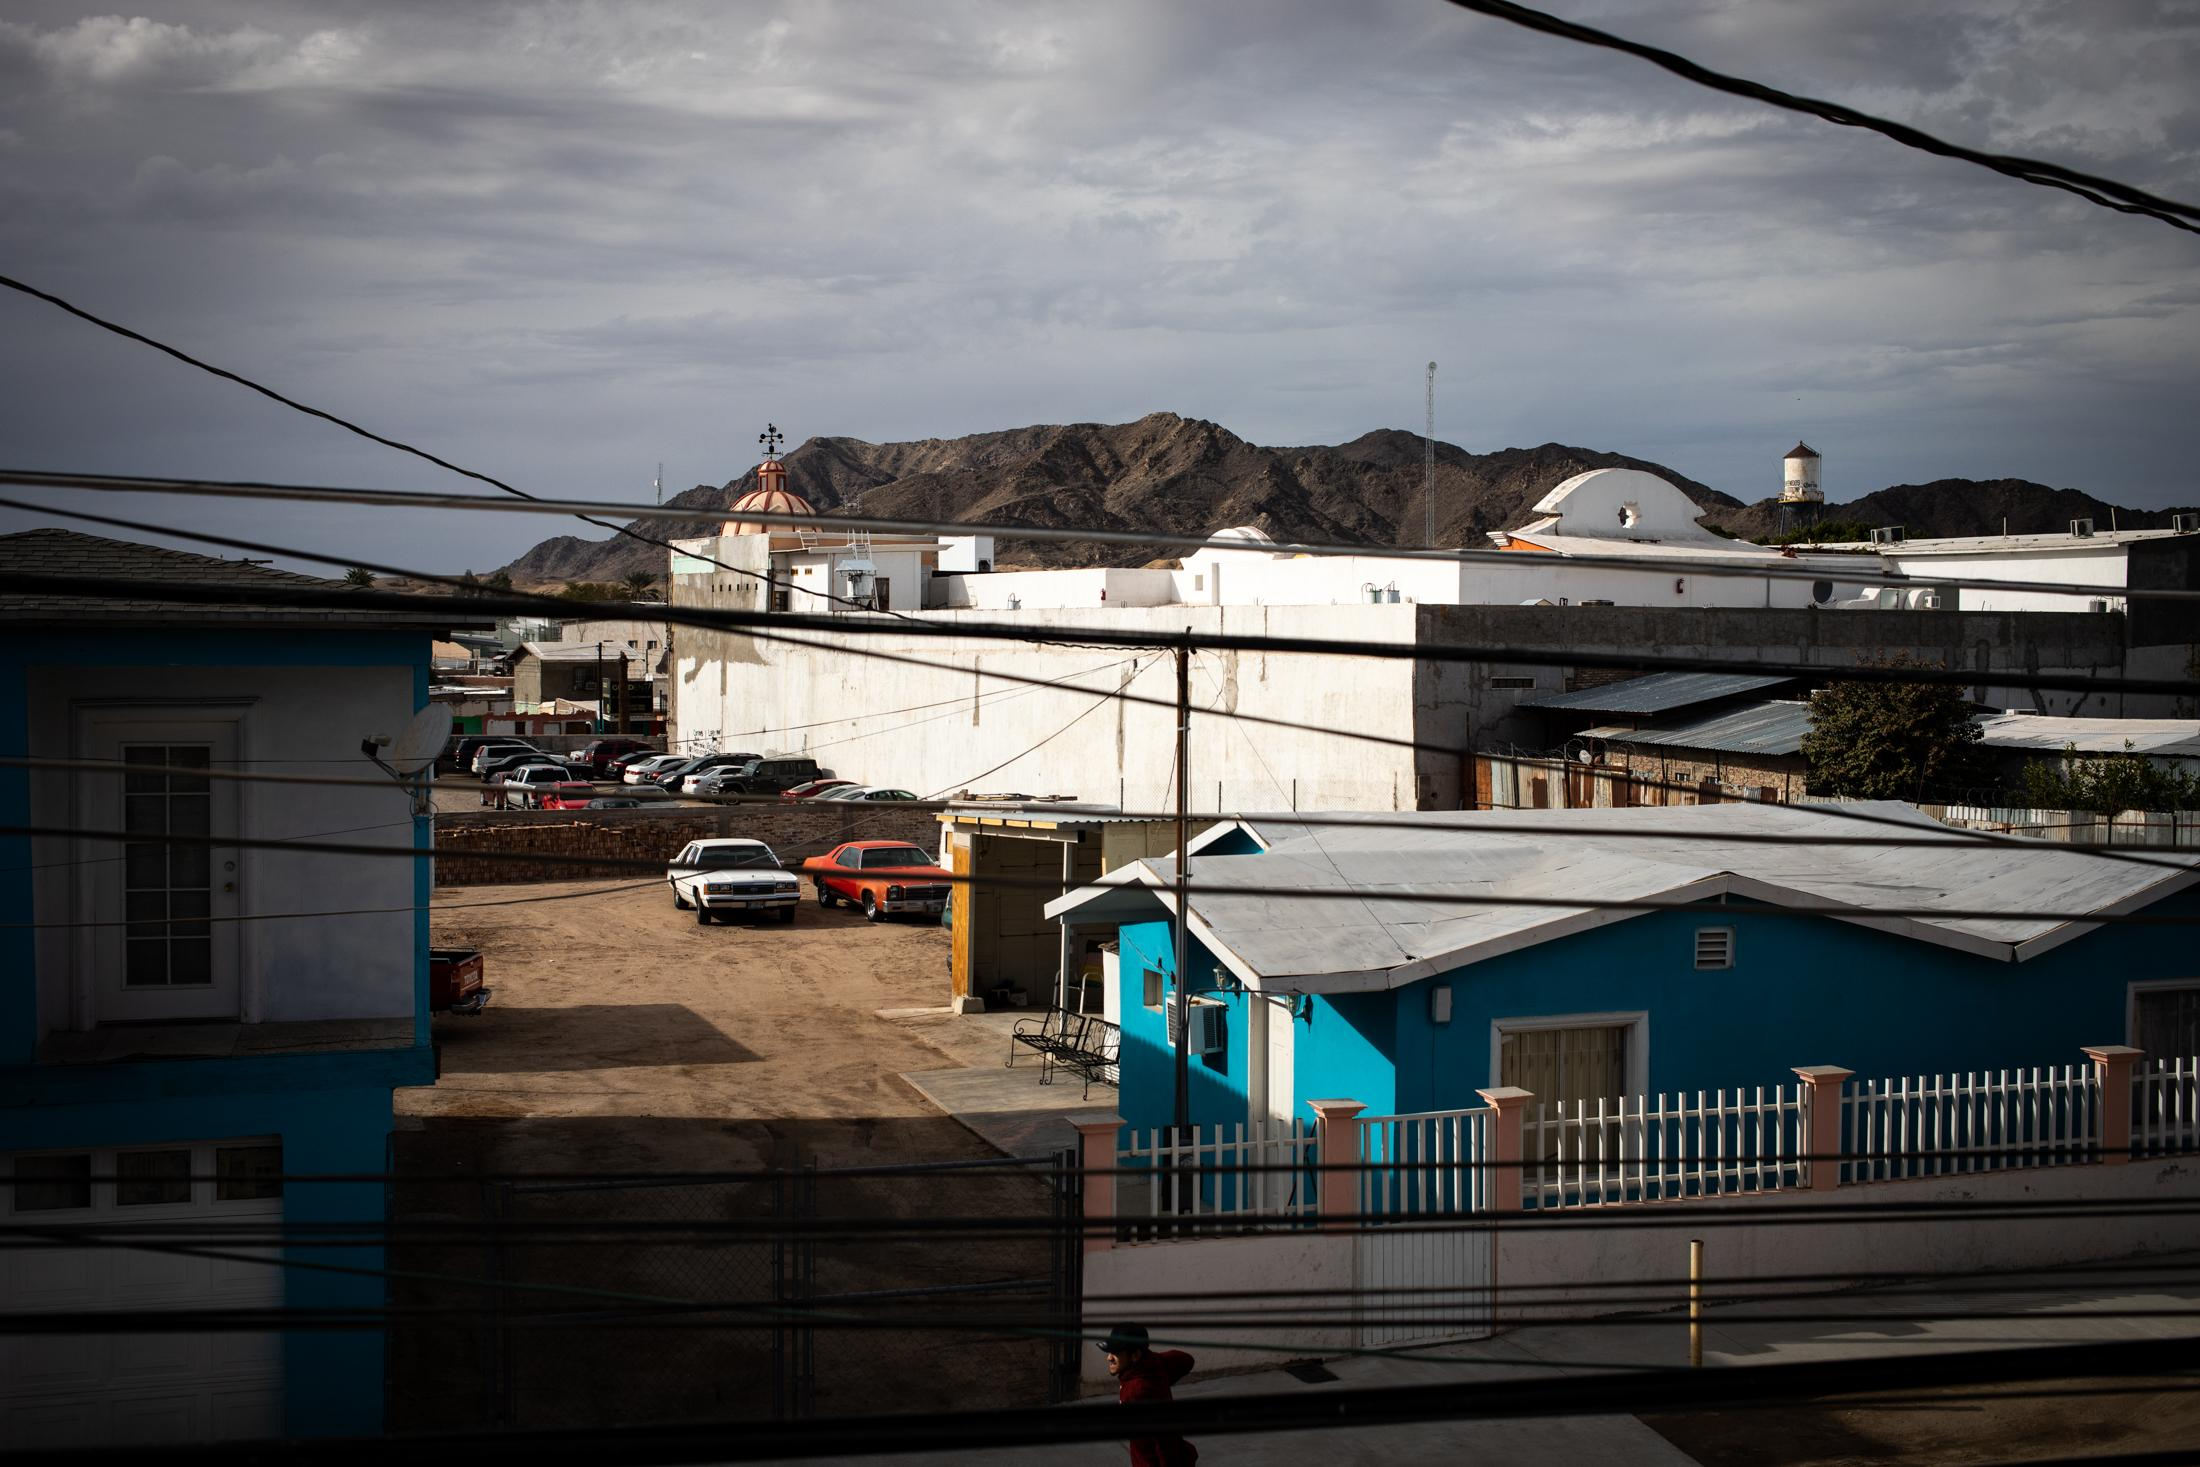 A view of Los Algodones, Baja California. The town is right on the US-Mexican border, just 7 miles from Yuma, Arizona.